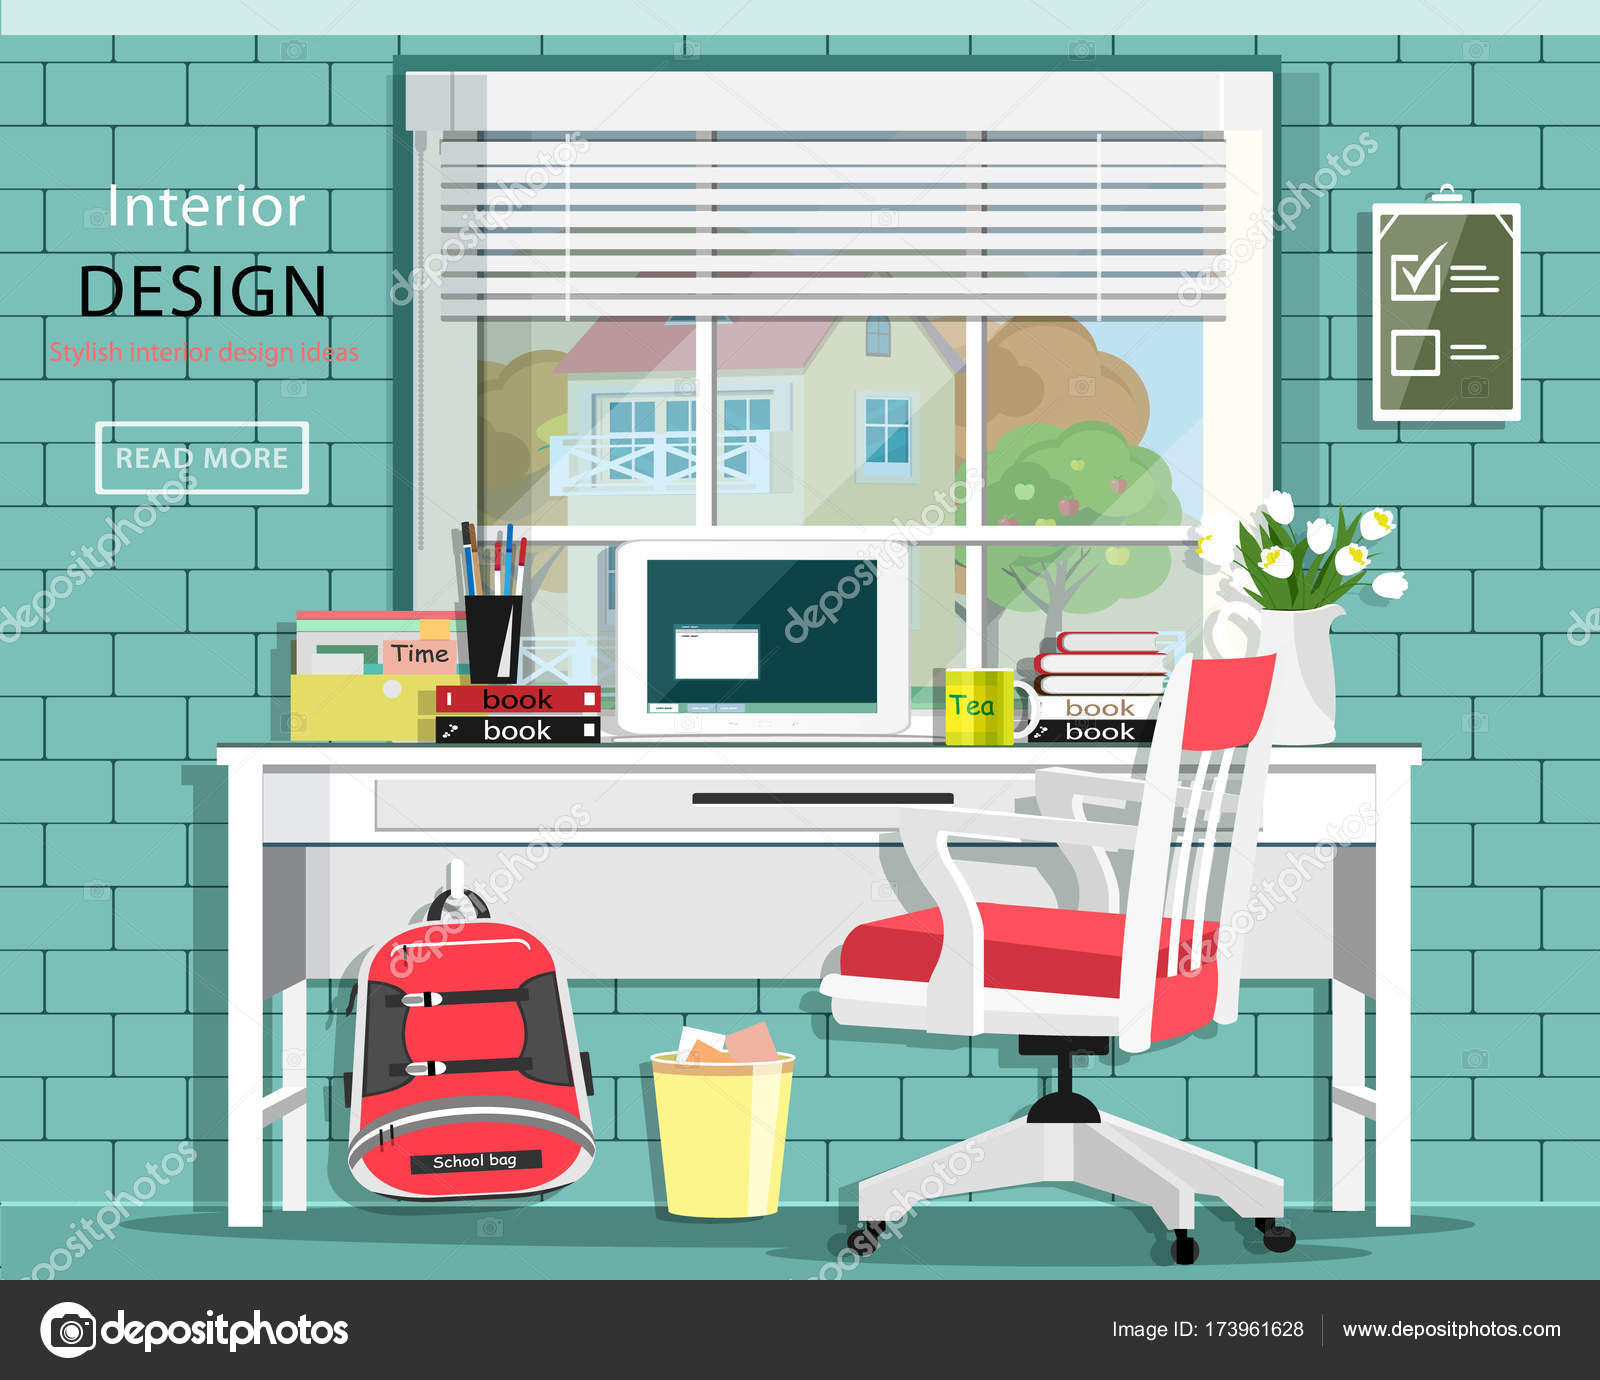 stylish home office chair desk graphic room set with desk chair window bag books note book stylish home office cute room vector illustration by marisa book